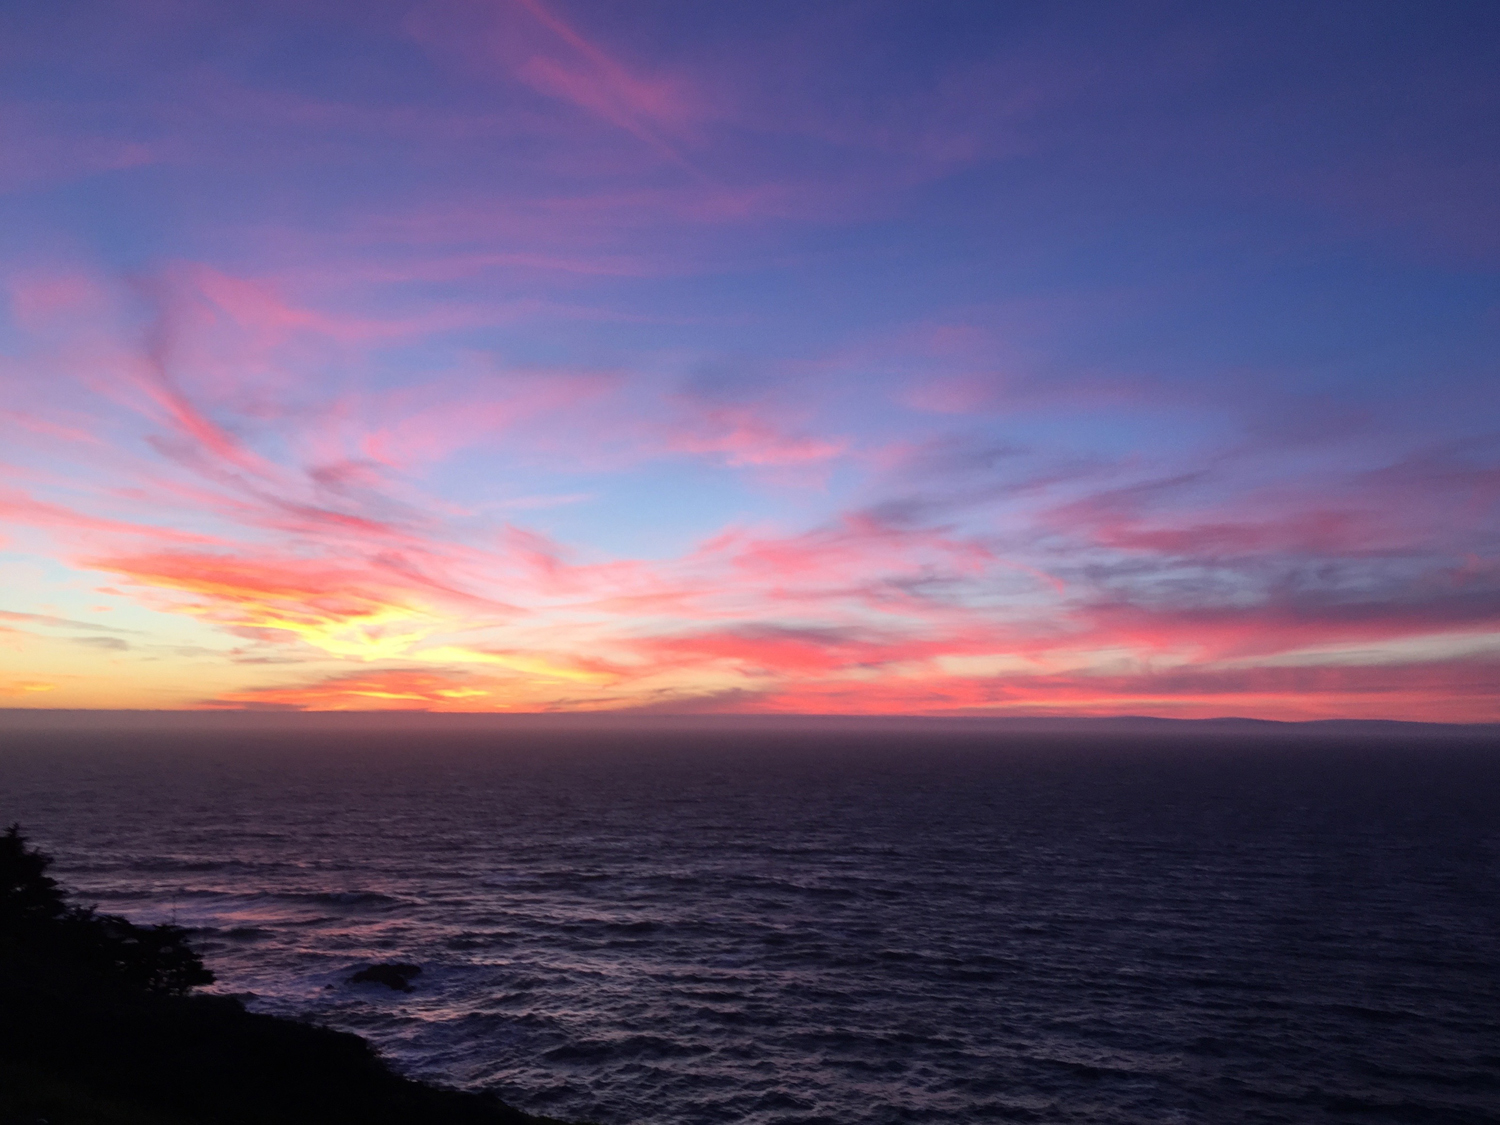 A hike on the Coastal Trail followed by a romantic Valentine's dinner from Chino's, along with the Sunday paper. (My favorite way to spend an evening.)